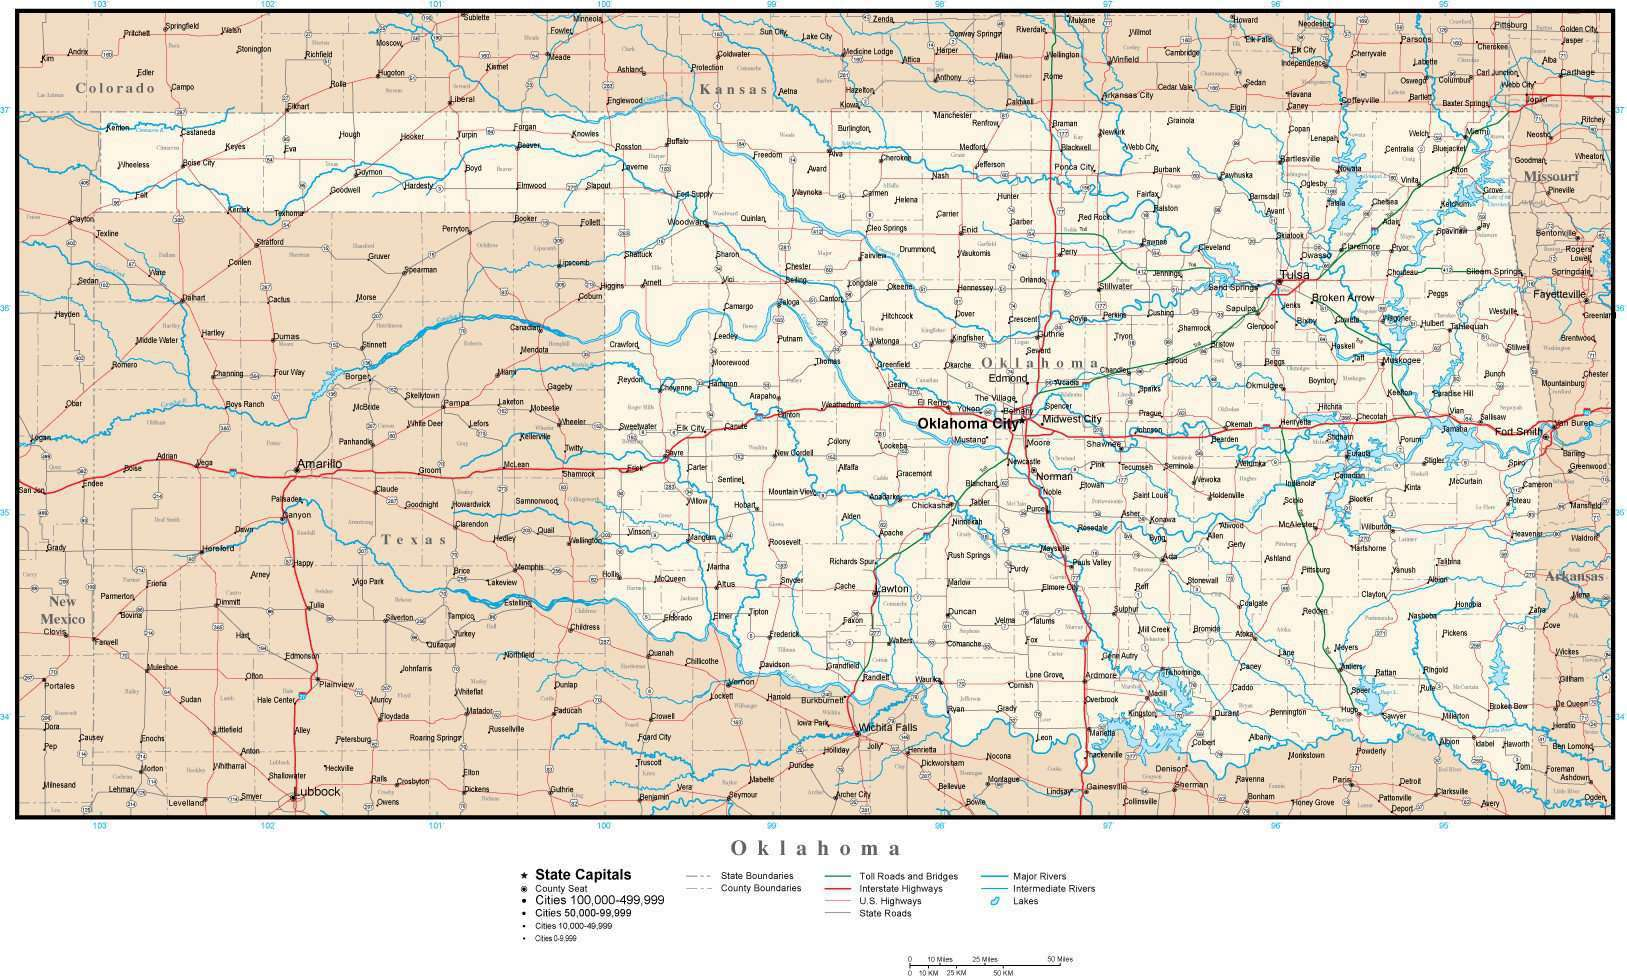 Oklahoma map in Adobe Illustrator vector format – Map Resources on